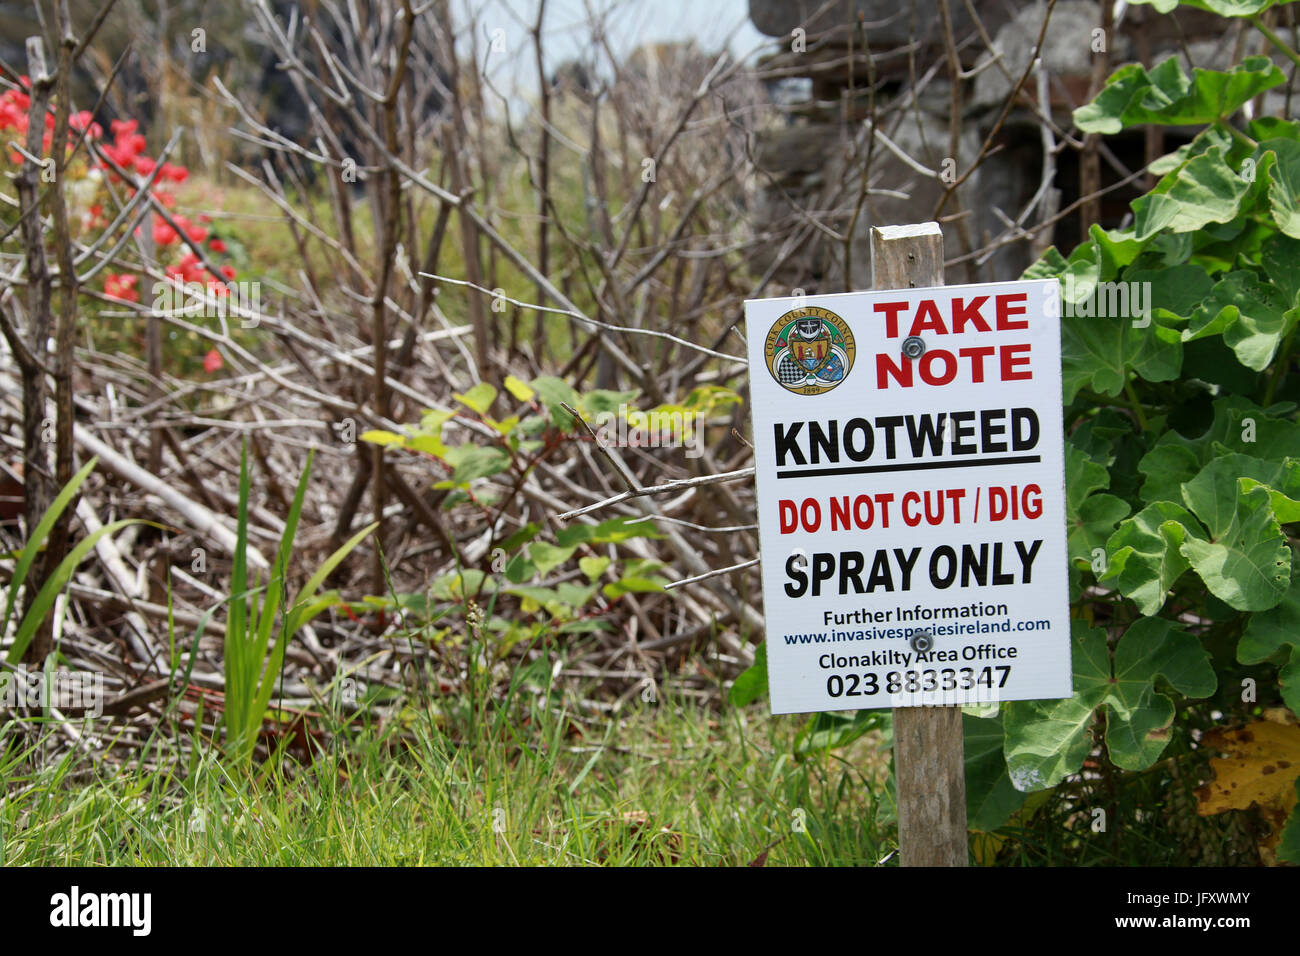 Treated knotweed plants and warning sign in the Republic of Ireland - Stock Image